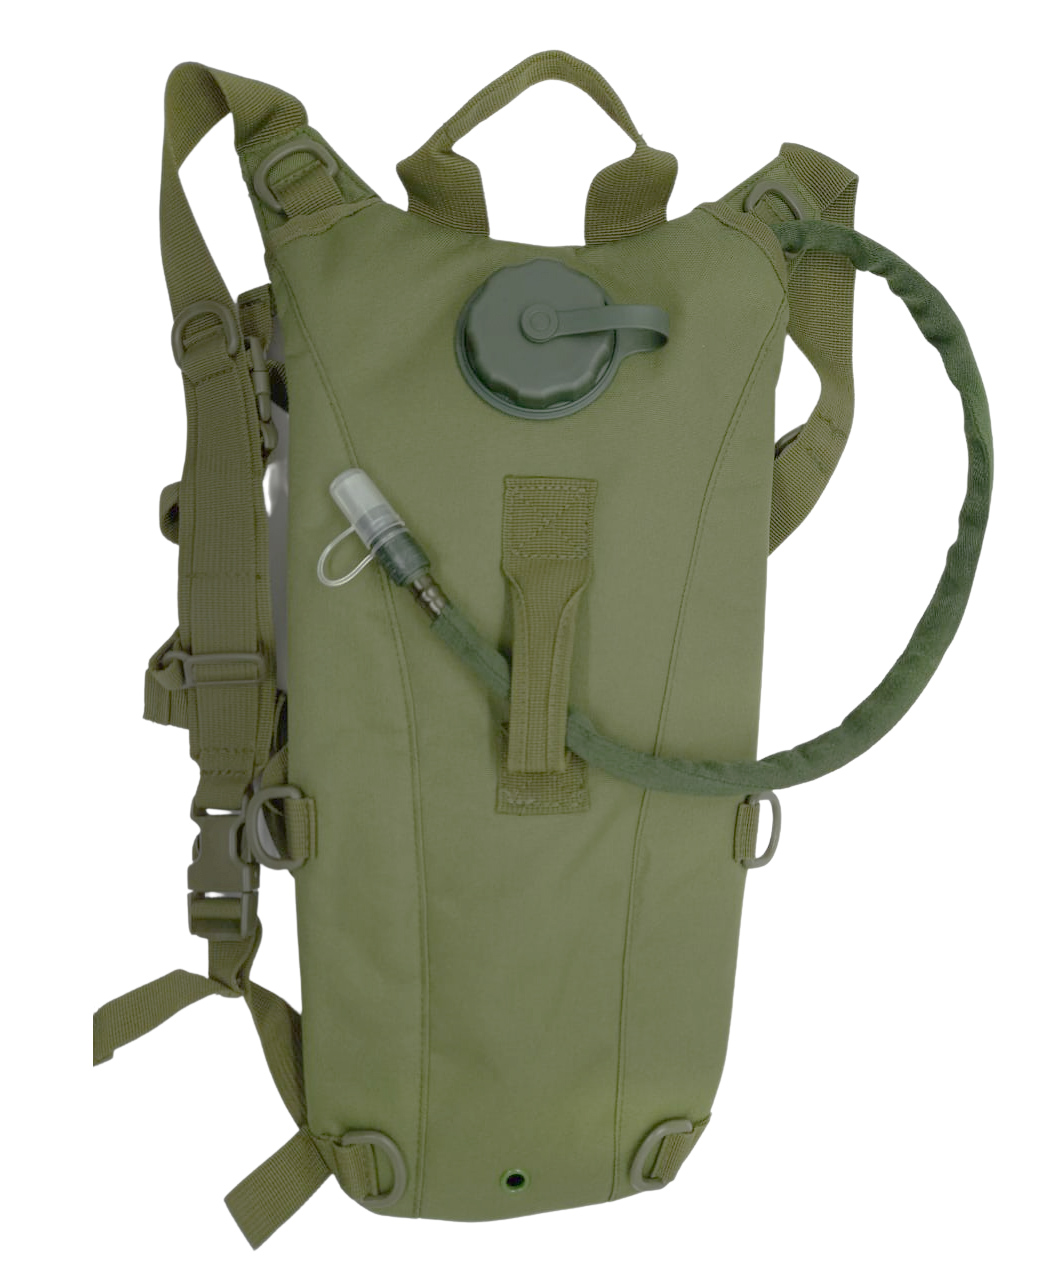 Camelback 3L  - Cor: Verde  - MAB AIRSOFT